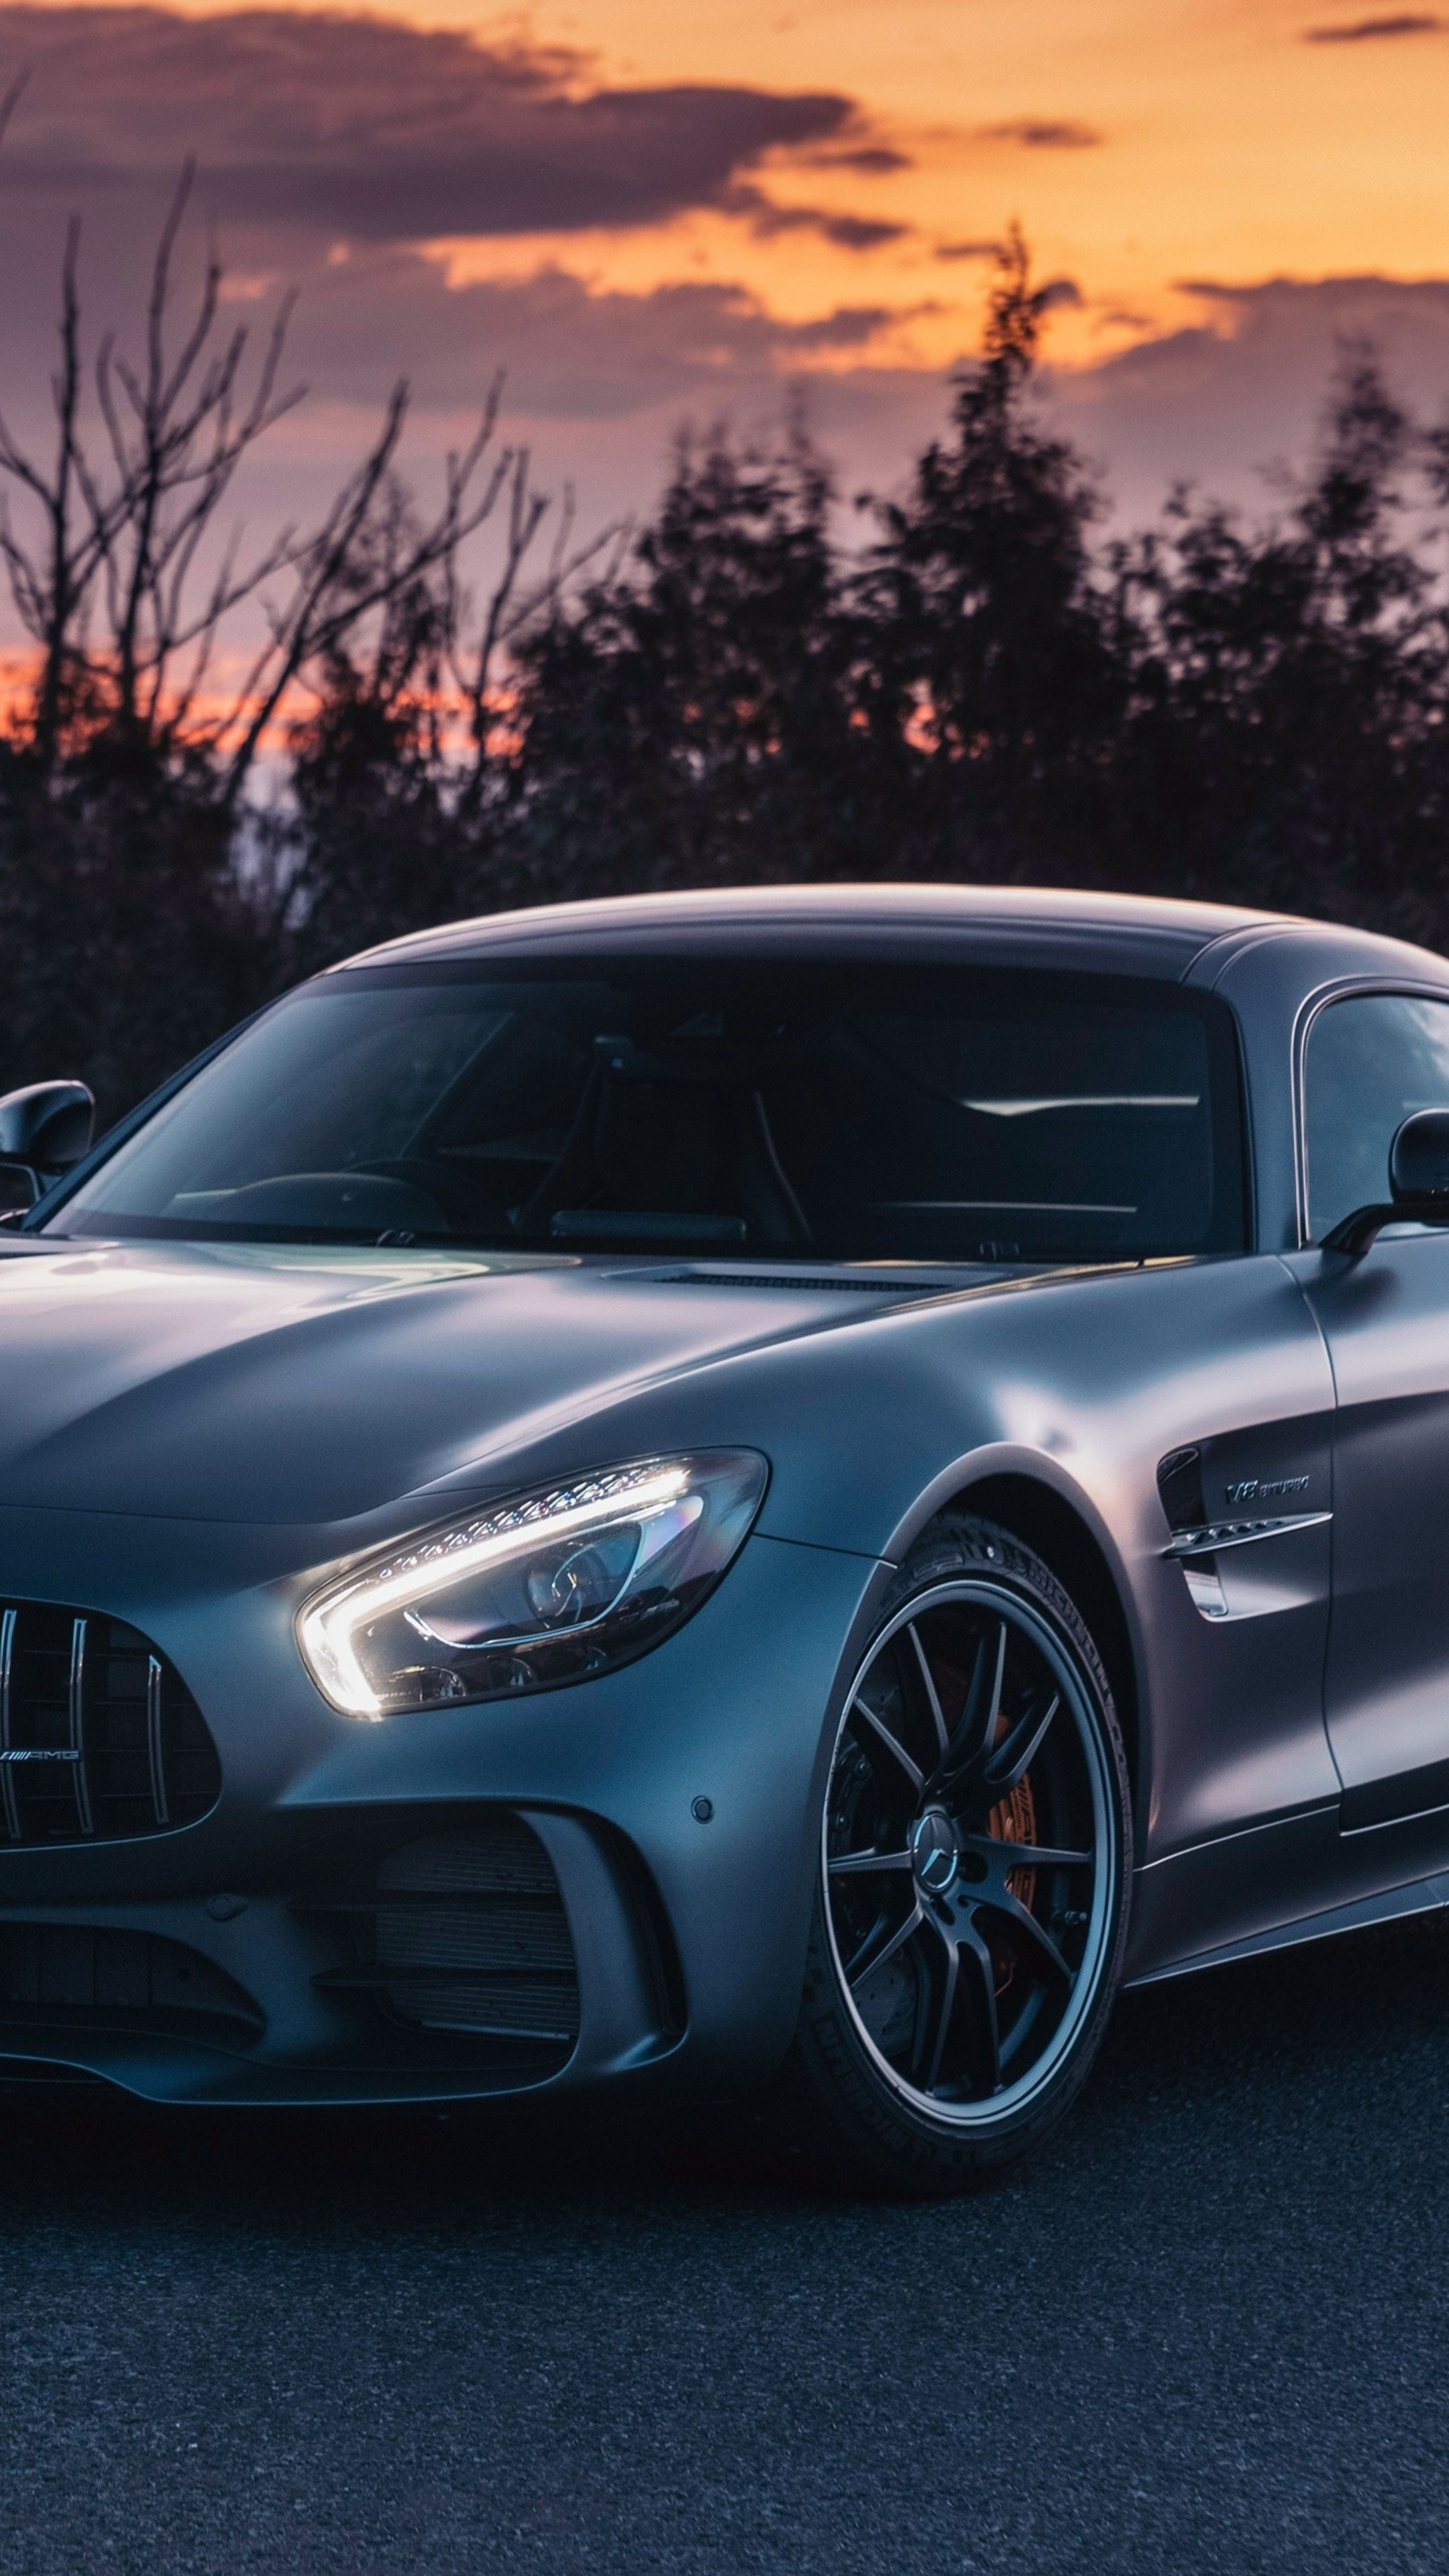 Cars Amg Gtr Mercedes Benz 2018 Wallpapers With Images